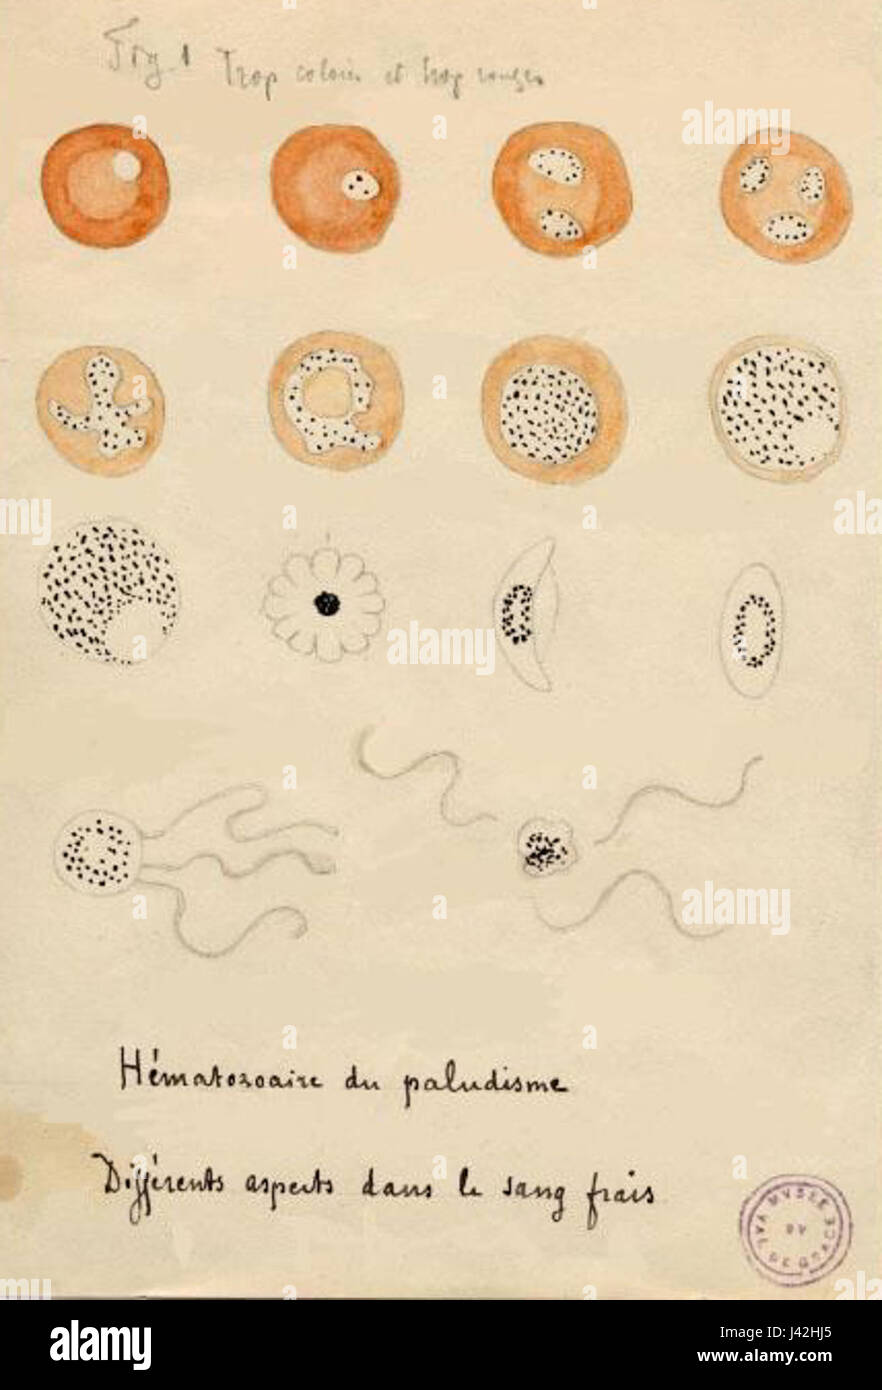 Laveran Malaria drawings Stock Photo